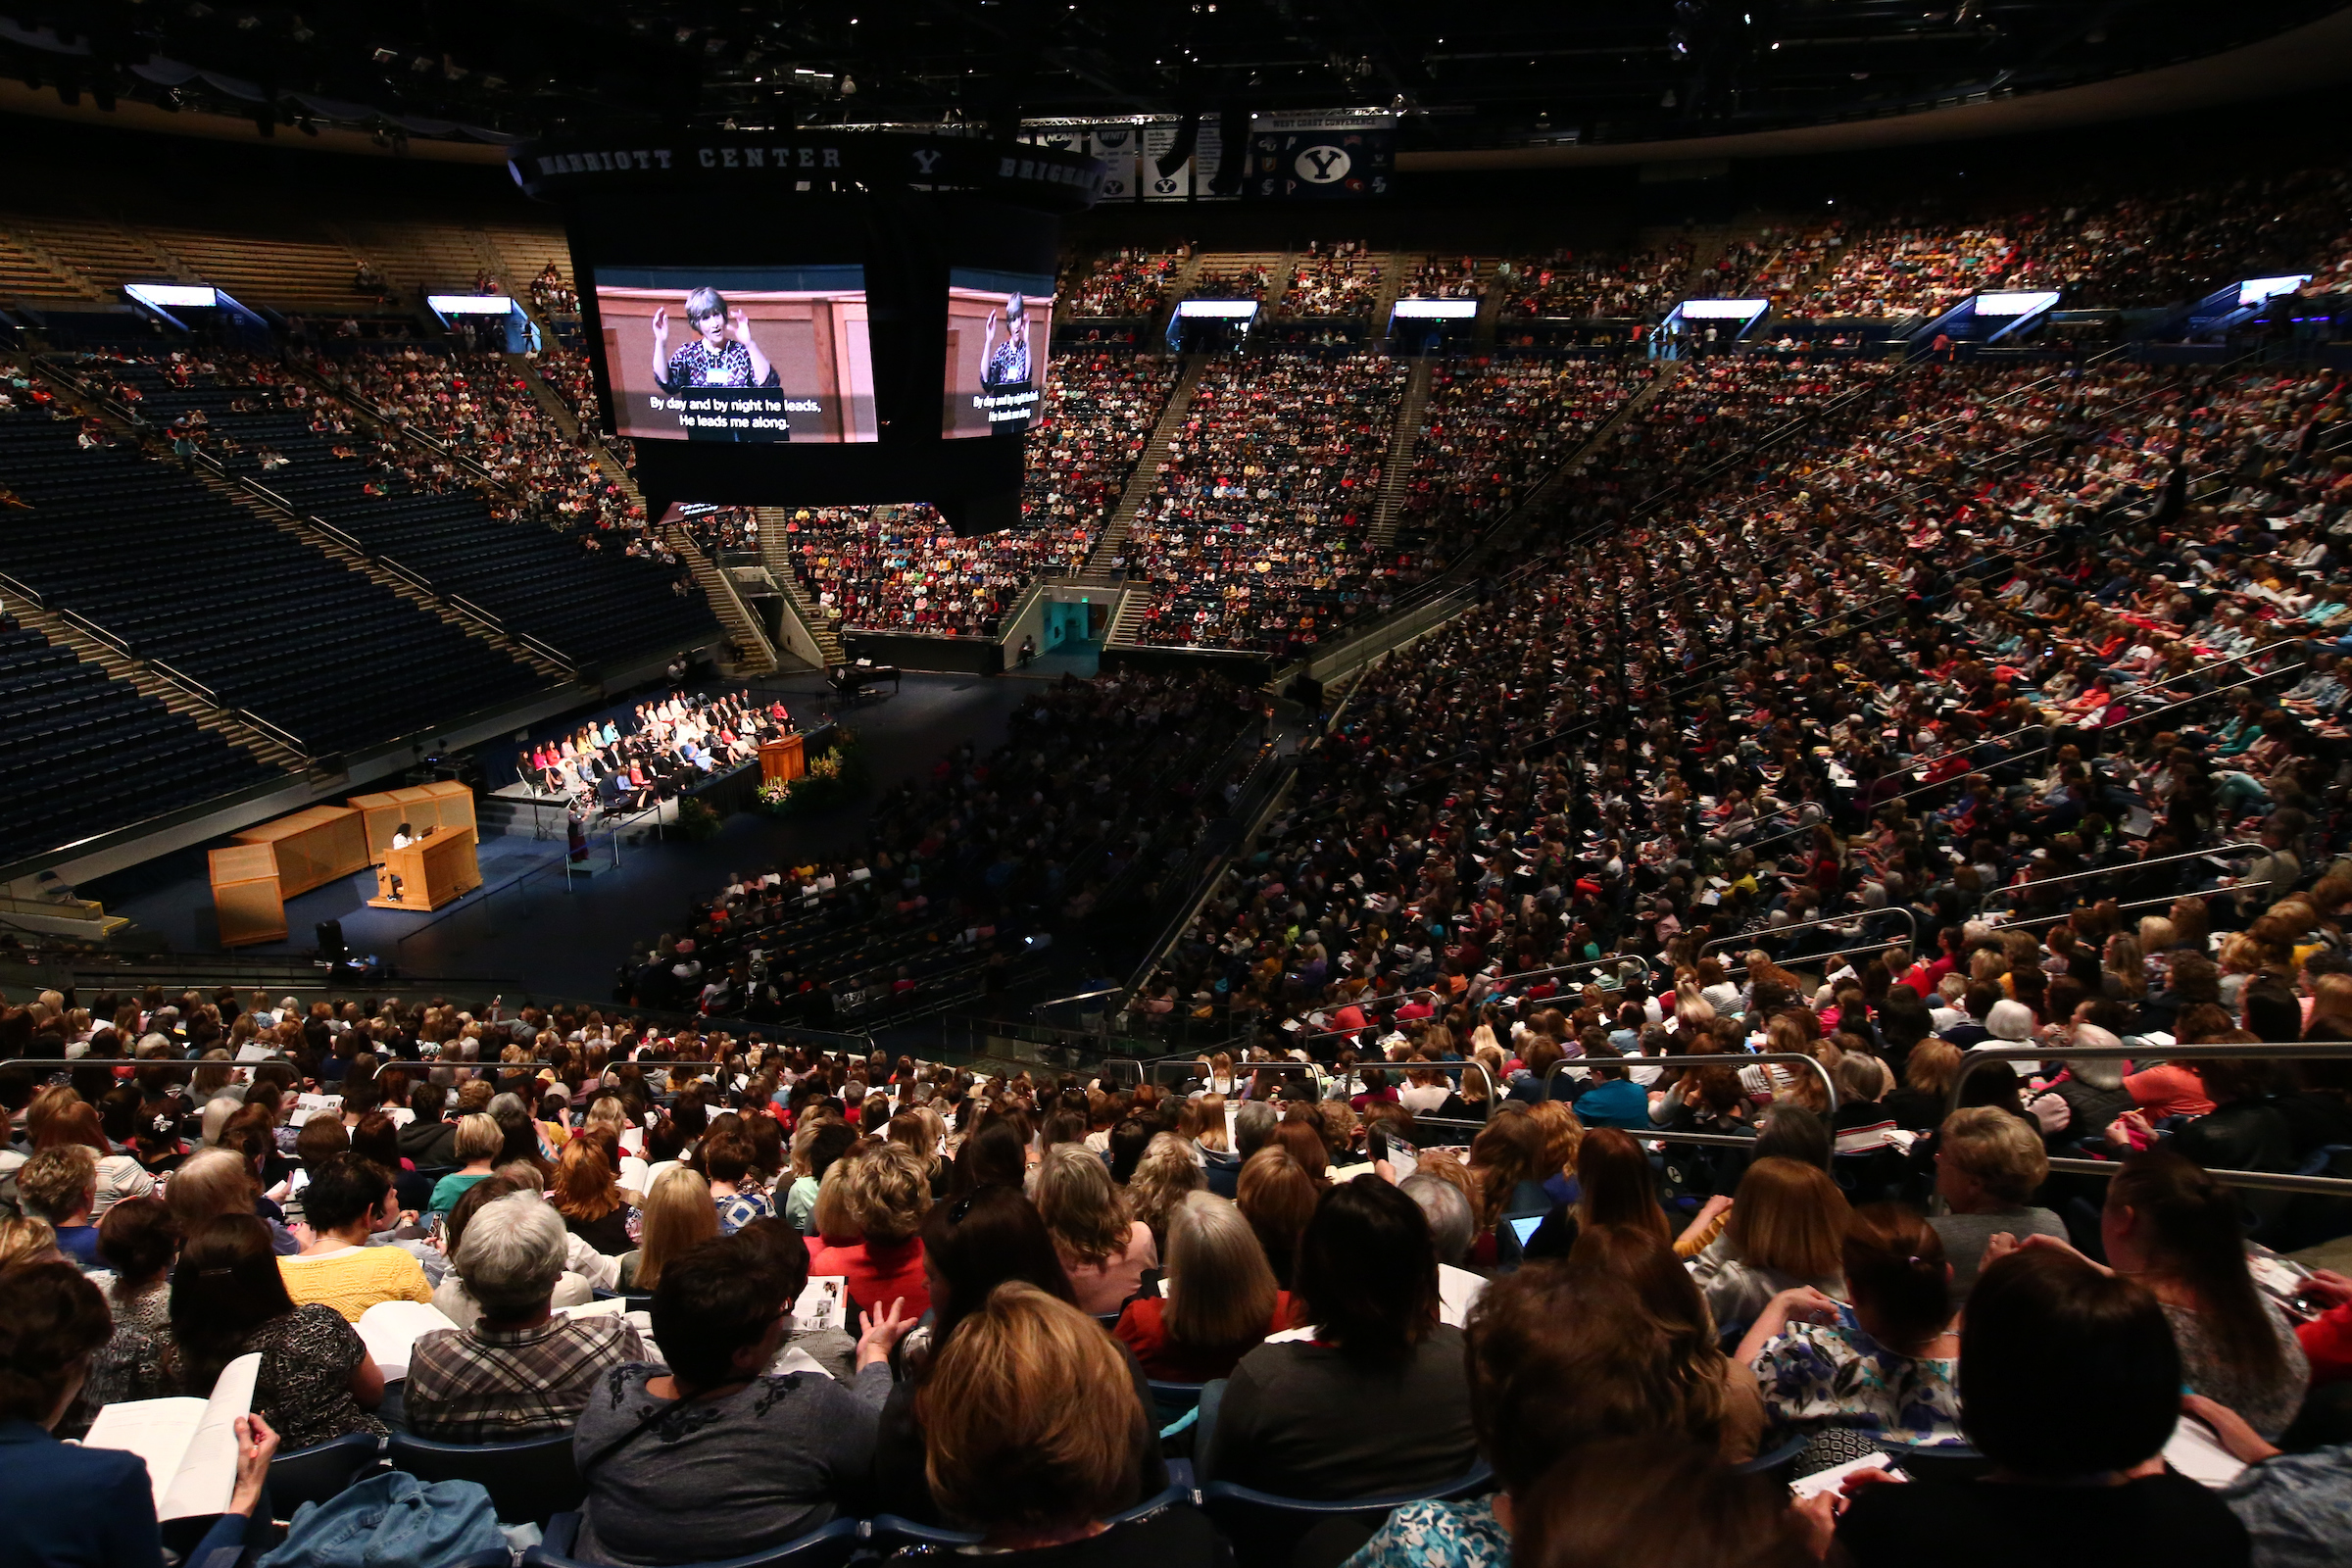 Women meet in the Marriott Center on the BYU campus during BYU Women's Conference held on May 3.